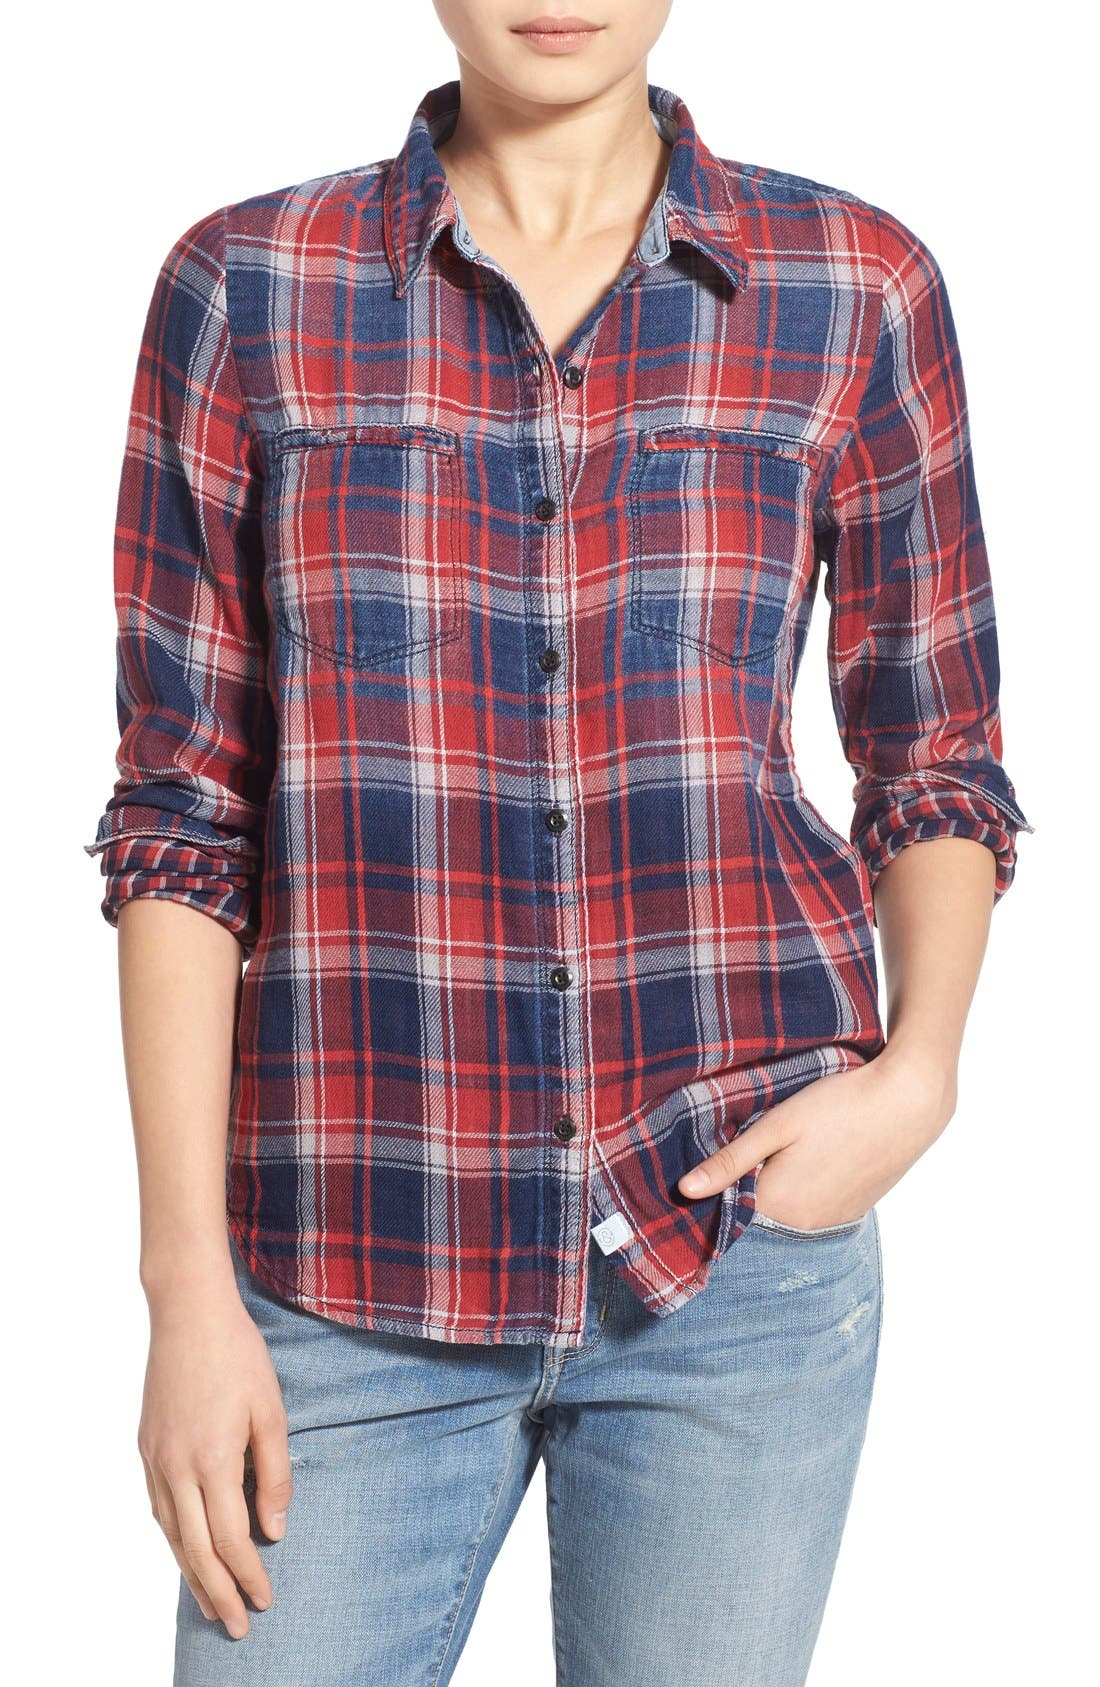 Treasure&Bond Classic Fit Plaid Shirt,                             Main thumbnail 1, color,                             400